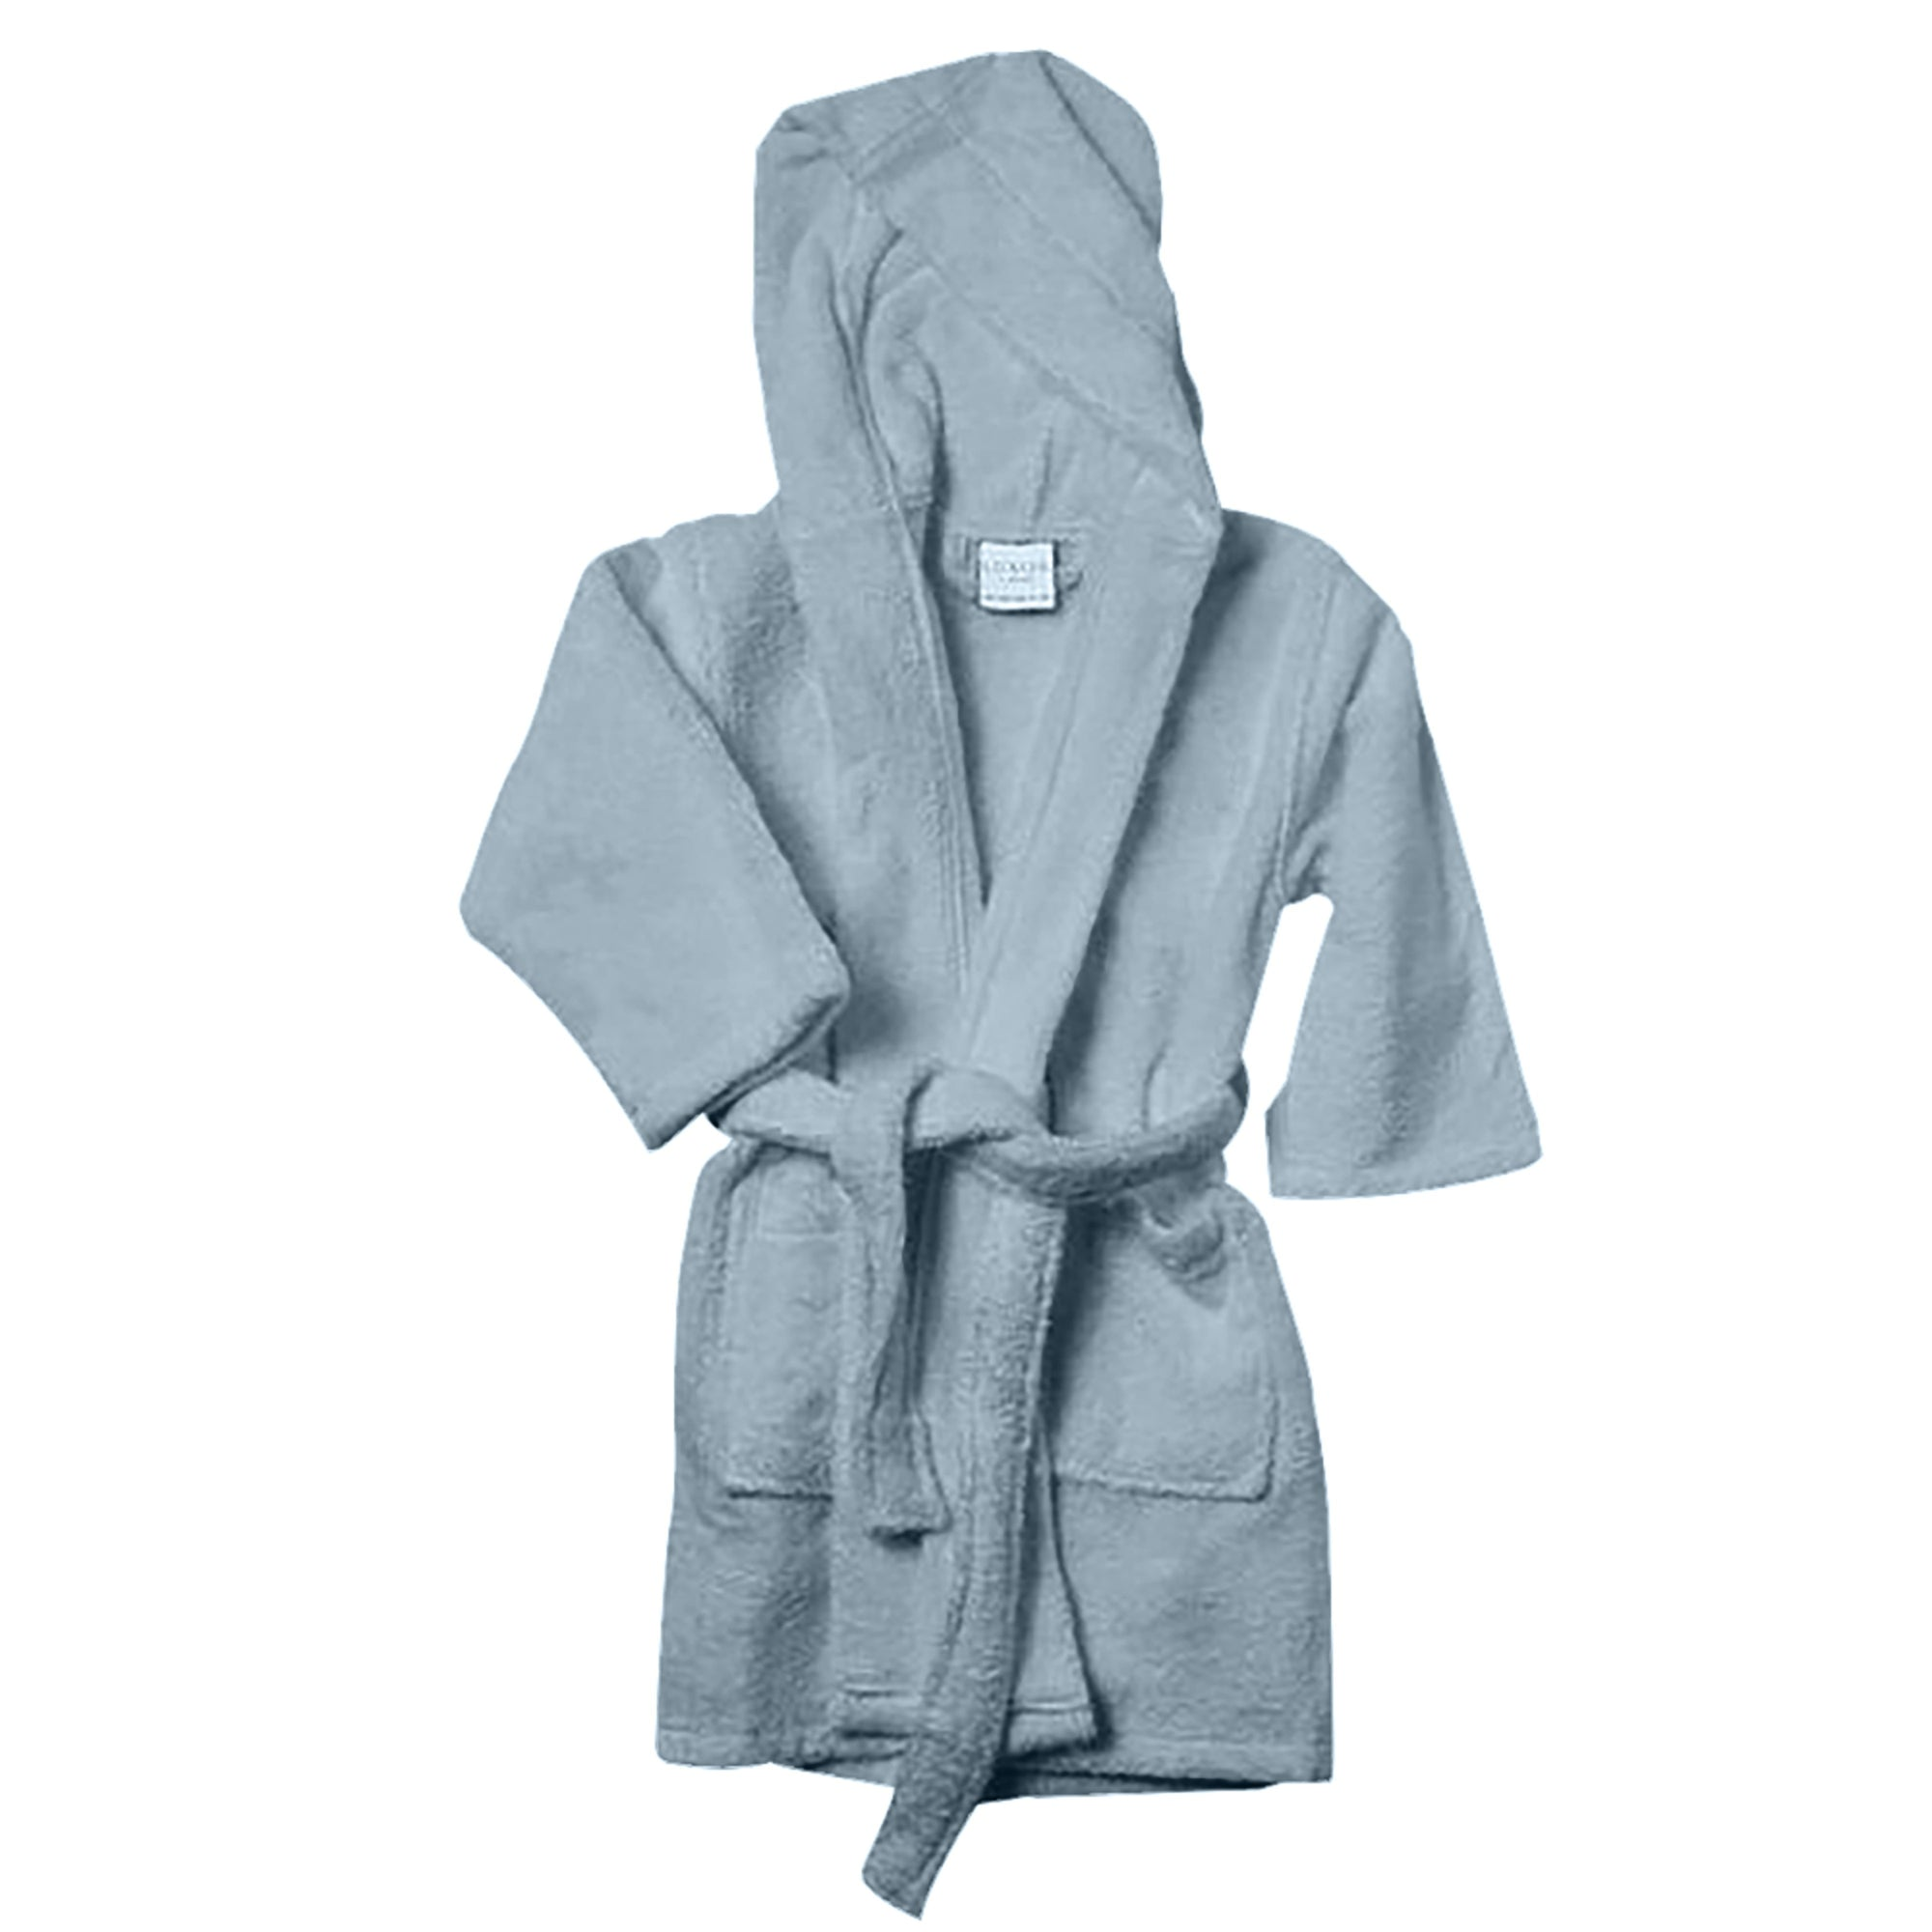 Alvare Luxury Kids Robe